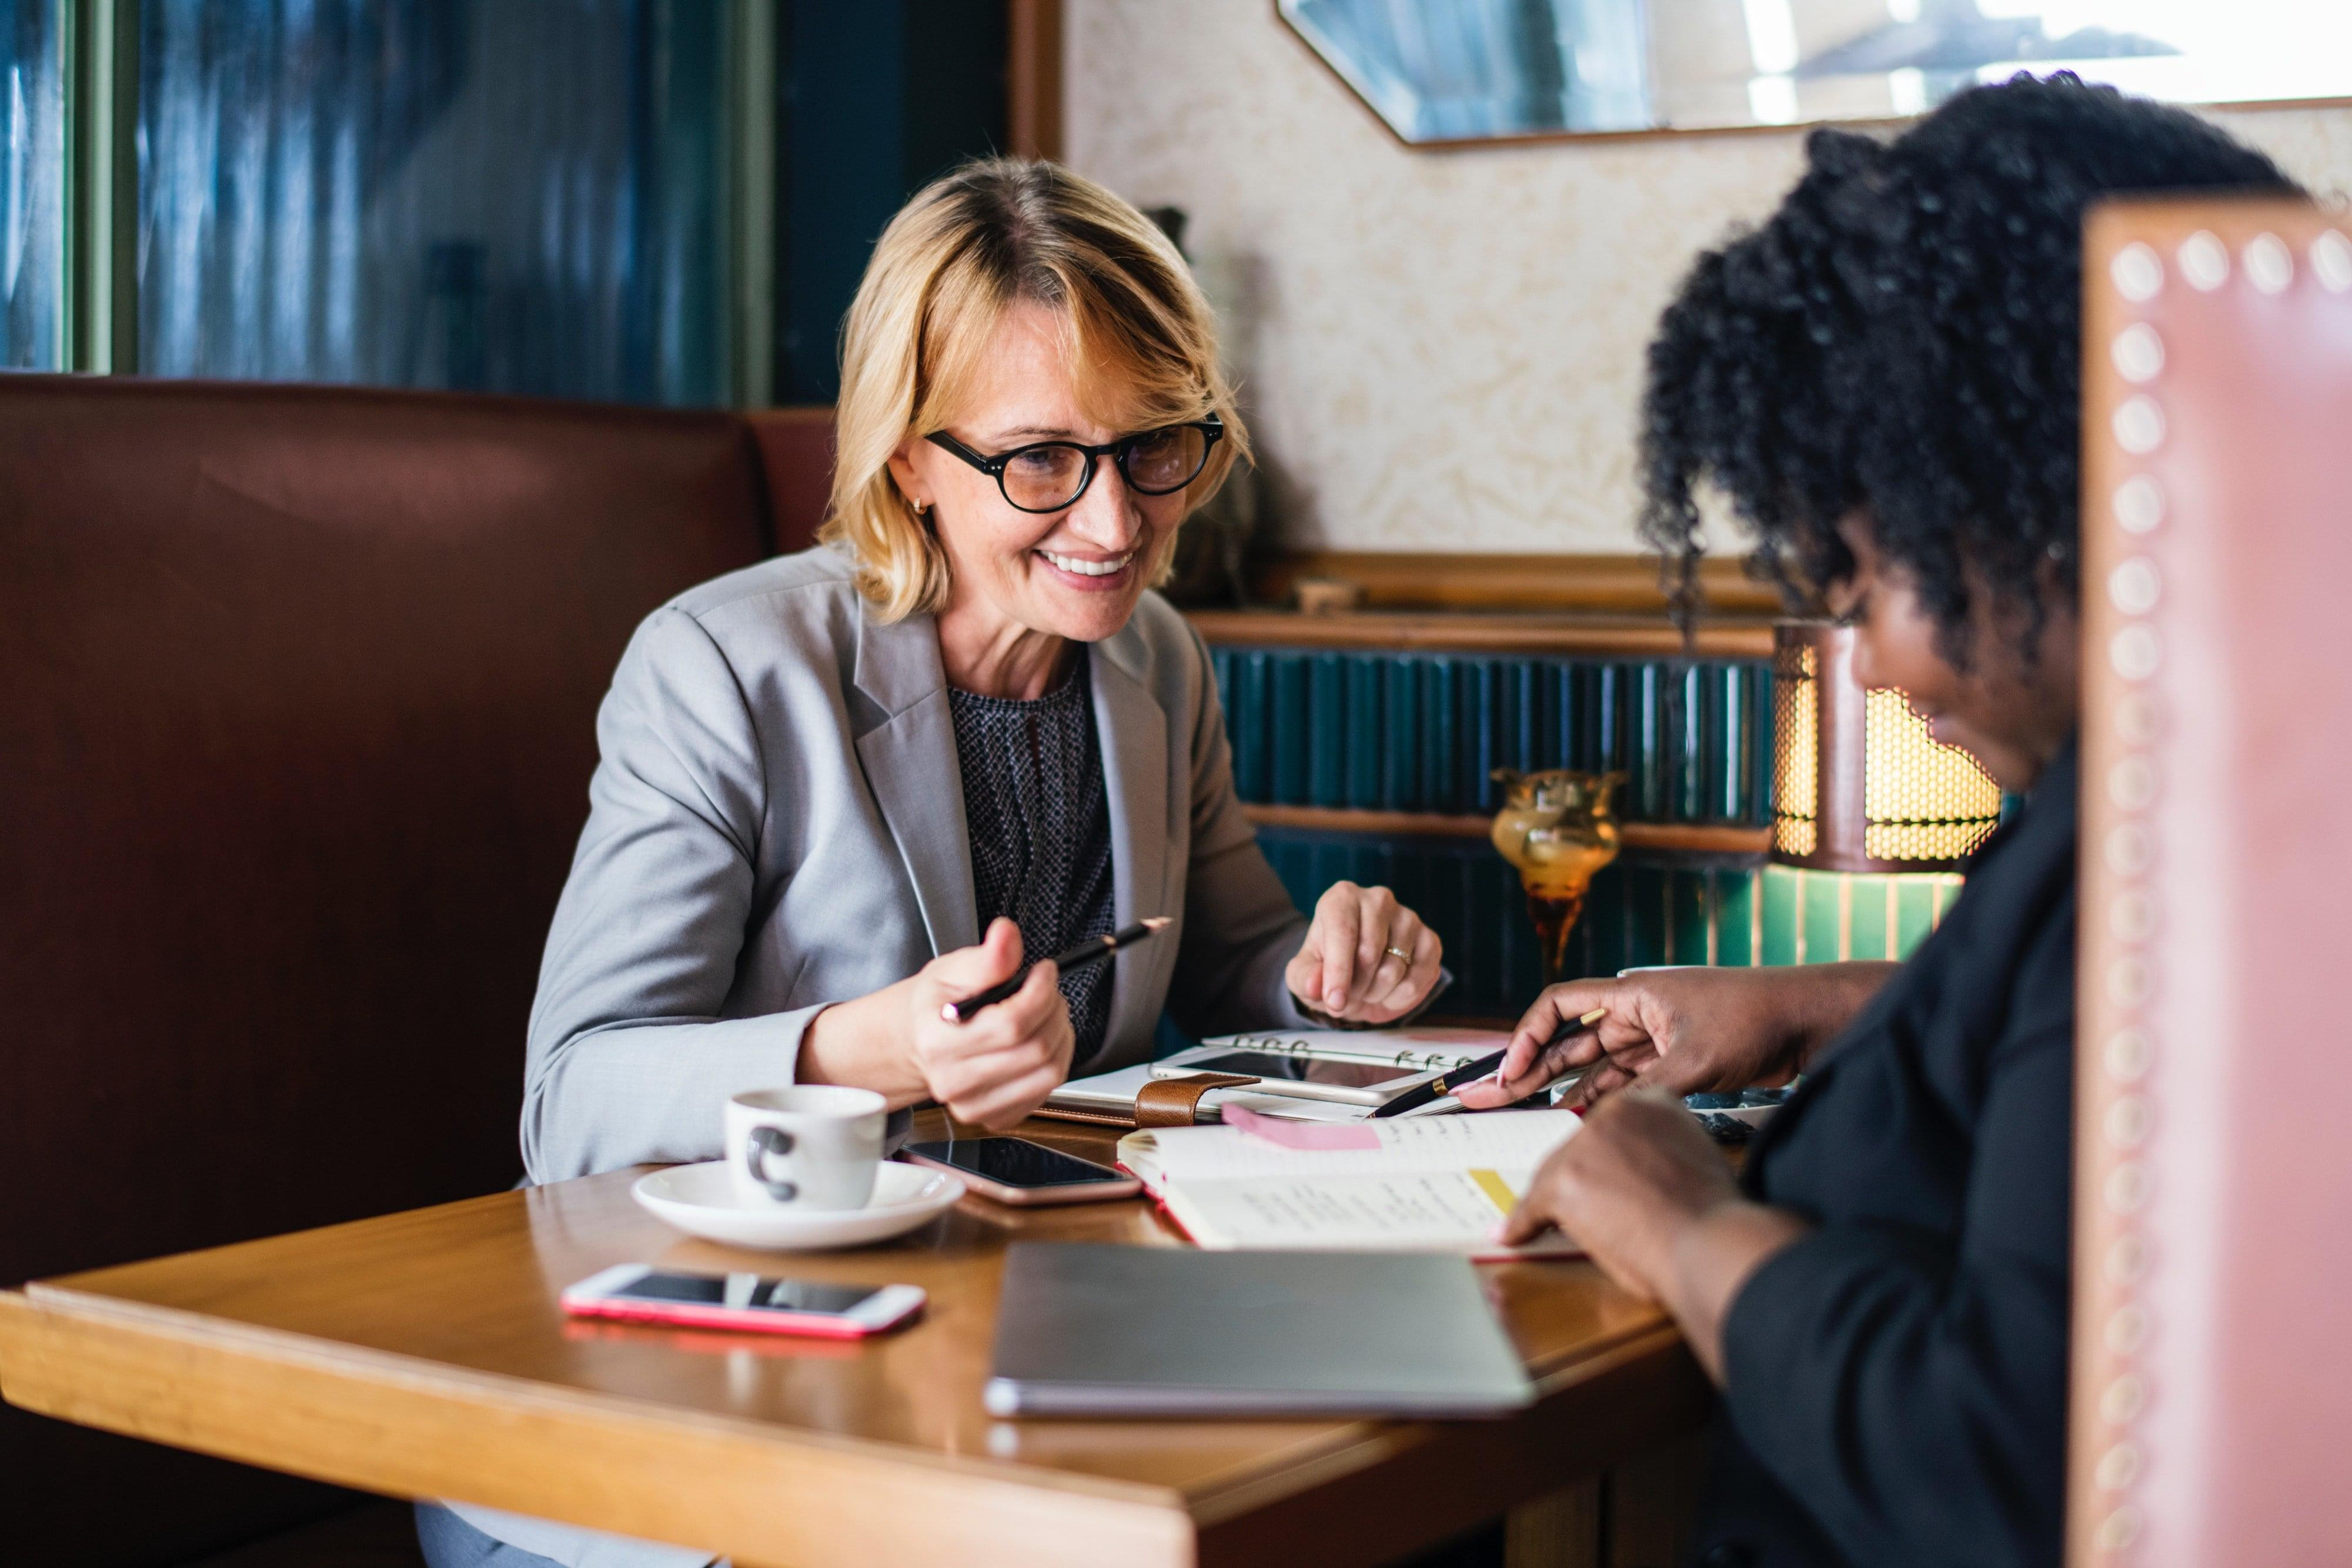 Business development meeting with two women at restaurant booth